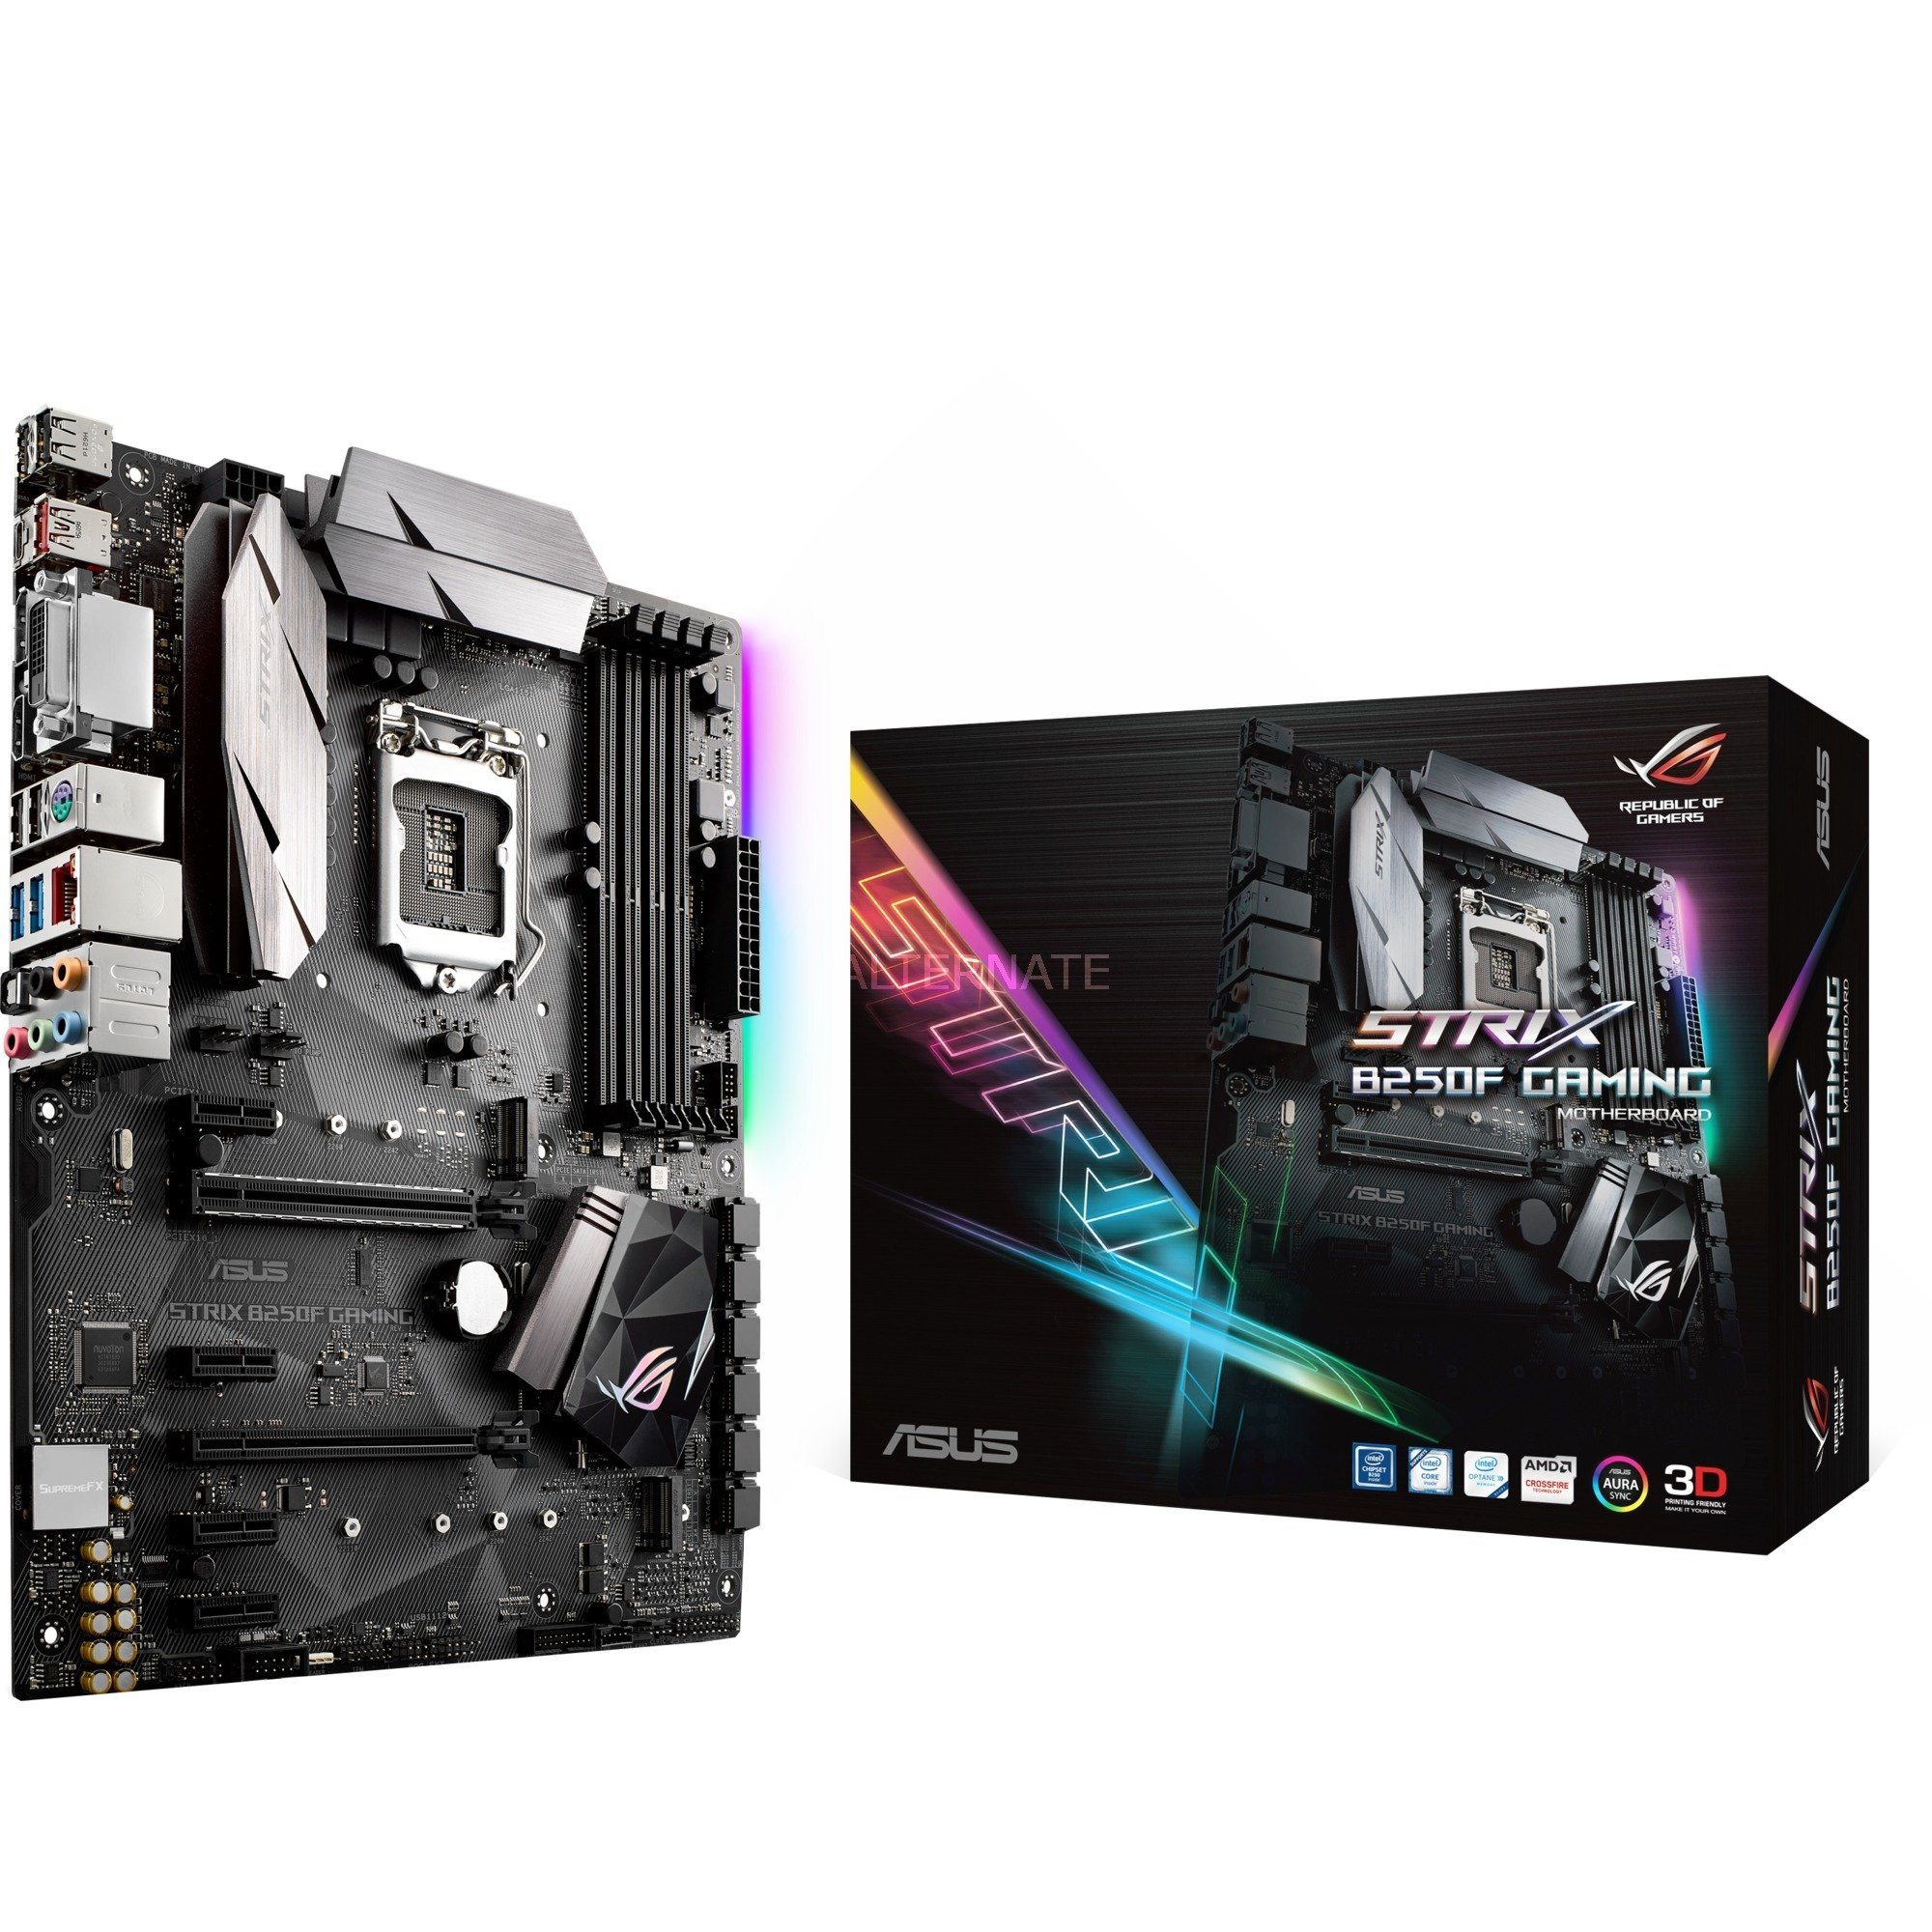 ROG STRIX B250F GAMING, Carte mère